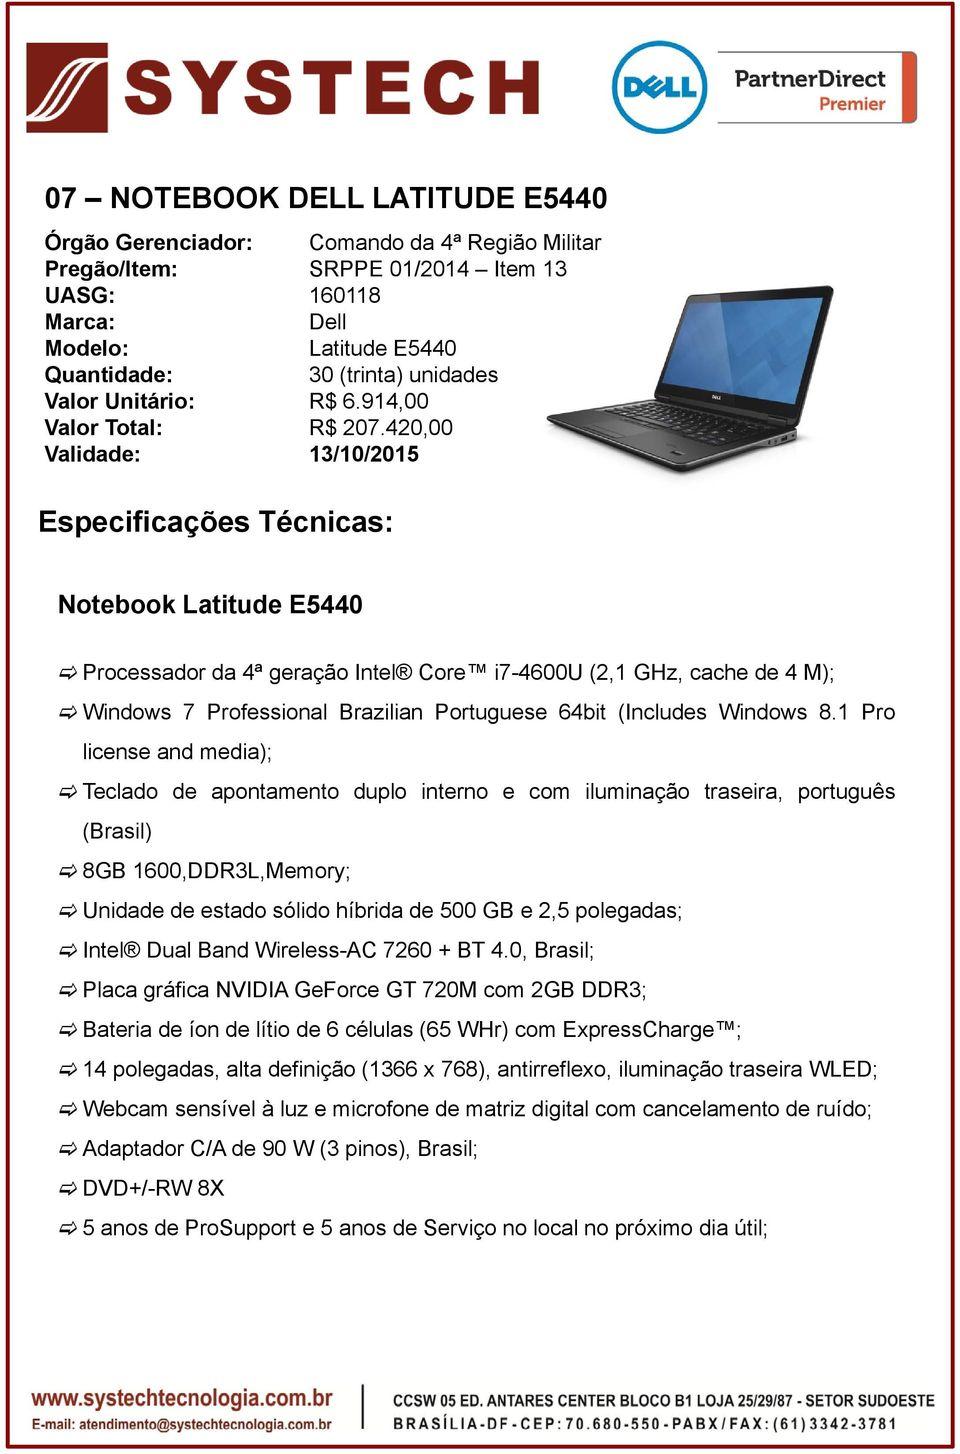 420,00 Validade: 13/10/2015 Notebook Latitude E5440 Processador da 4ª geração Intel Core i7-4600u (2,1 GHz, cache de 4 M); Windows 7 Professional Brazilian Portuguese 64bit (Includes Windows 8.